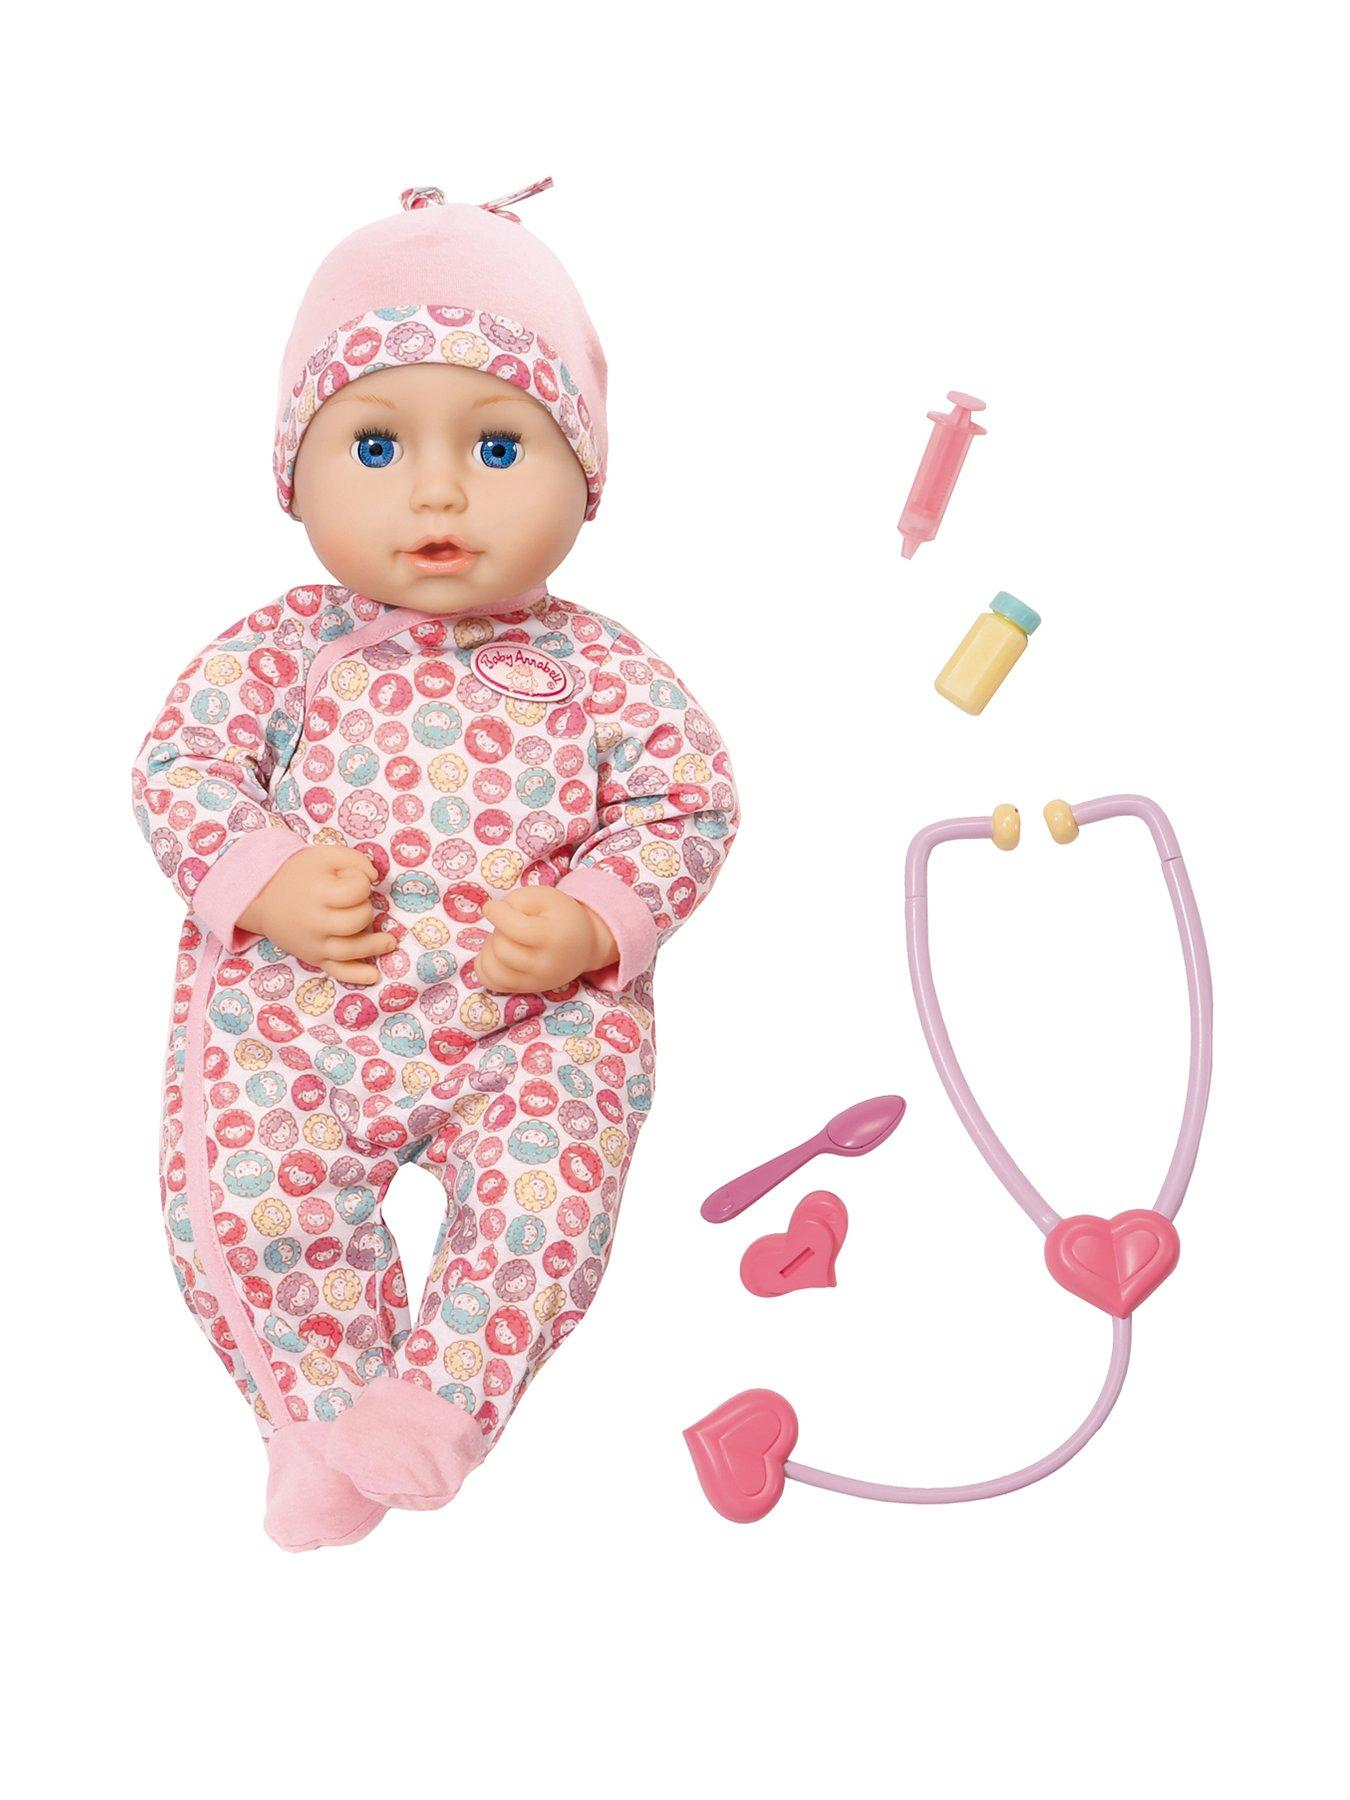 Diapering Baby Annabell Deluxe Special Care Set Cheap Sales 50%